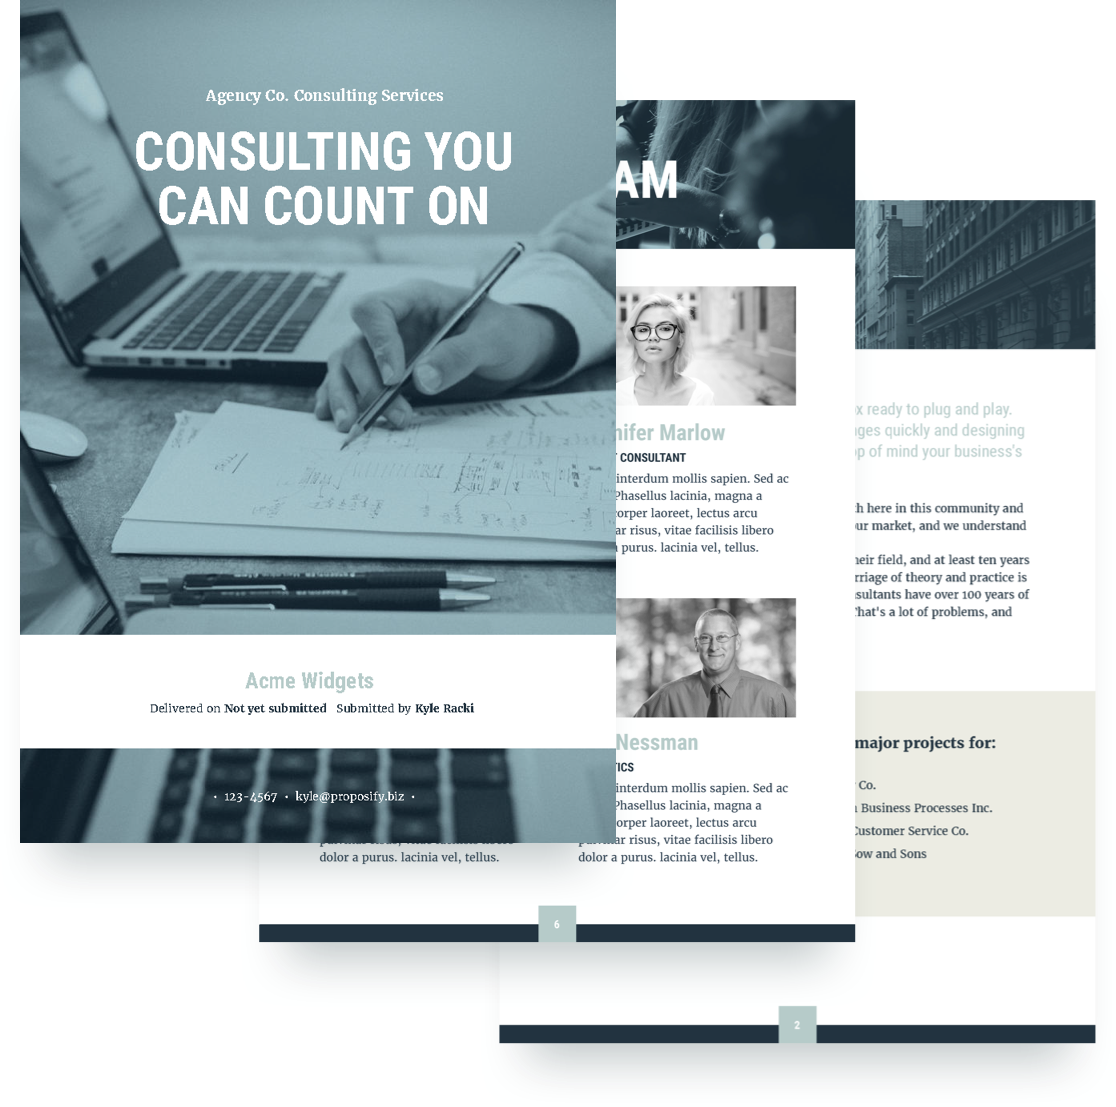 Consulting proposal template free sample proposify consulting proposal template wajeb